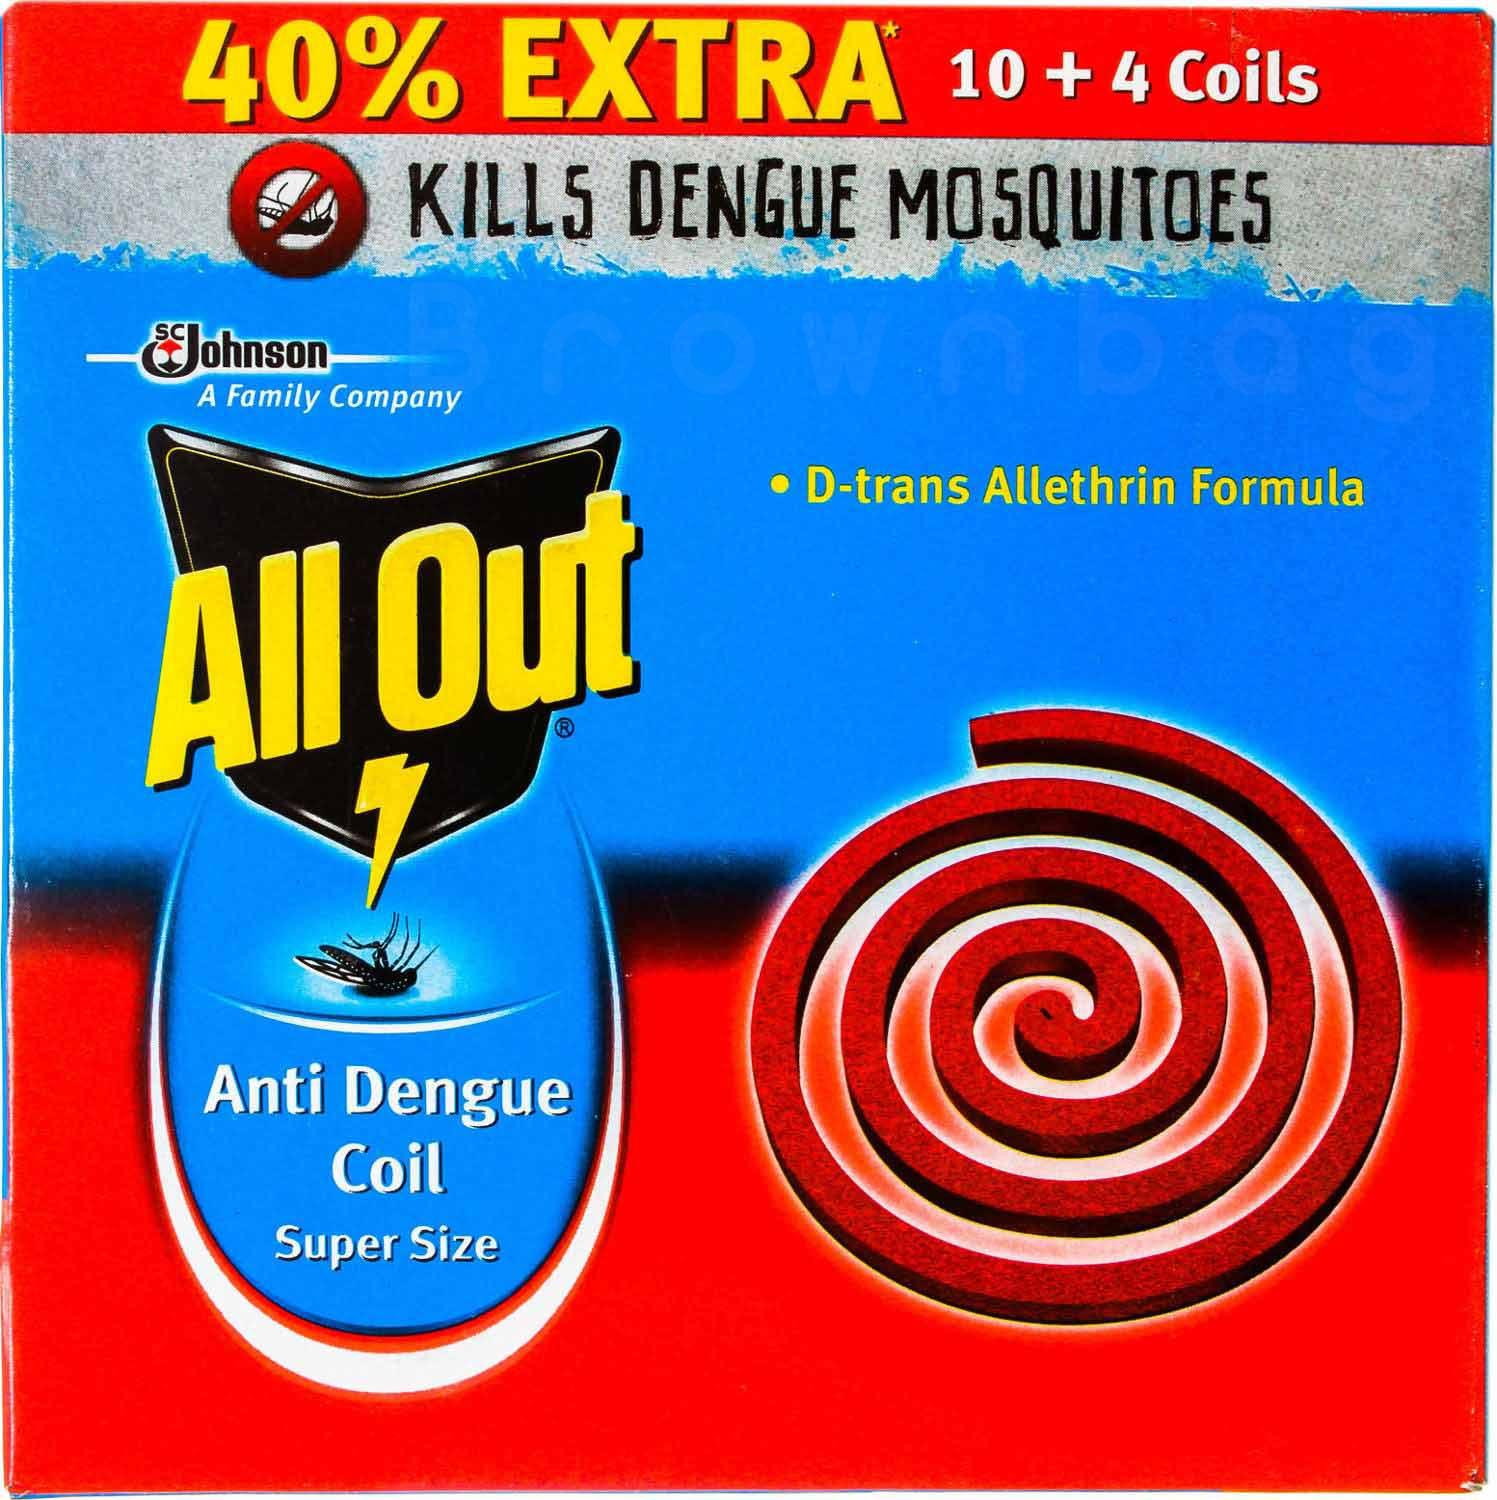 All out Anti Dengue Coil